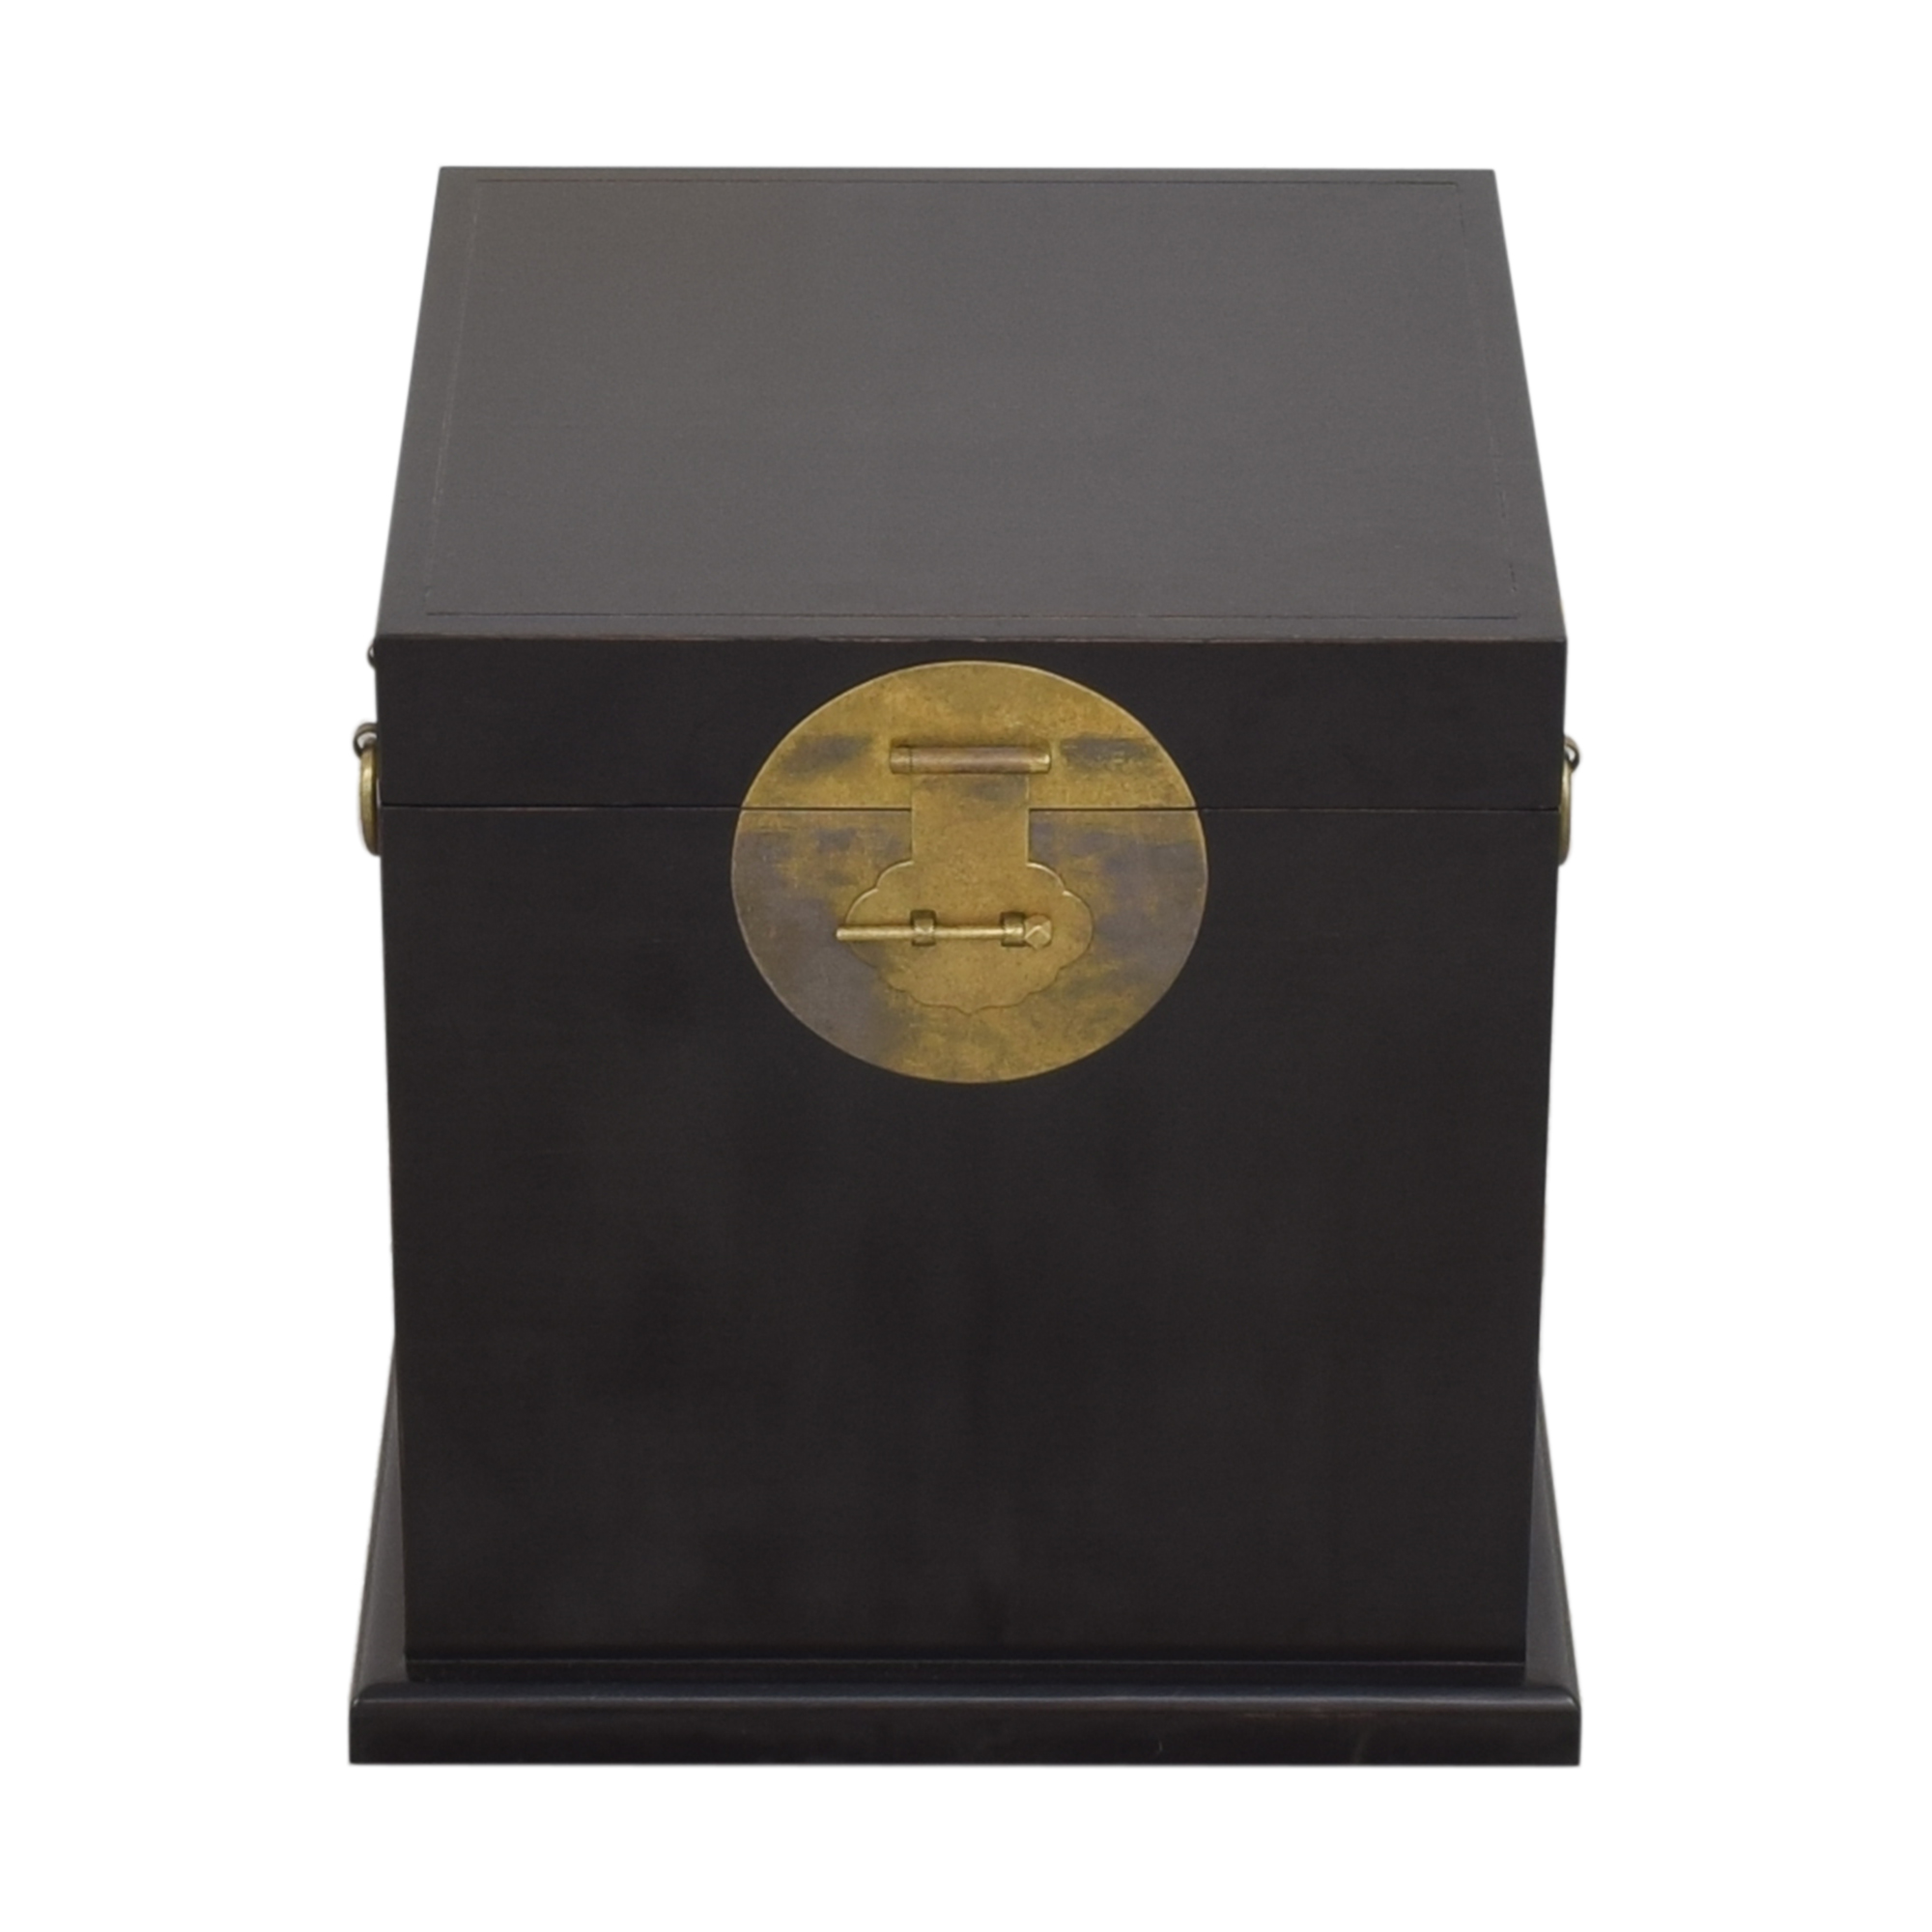 Brownstone Furniture Brownstone Furniture Regency Trunk on sale